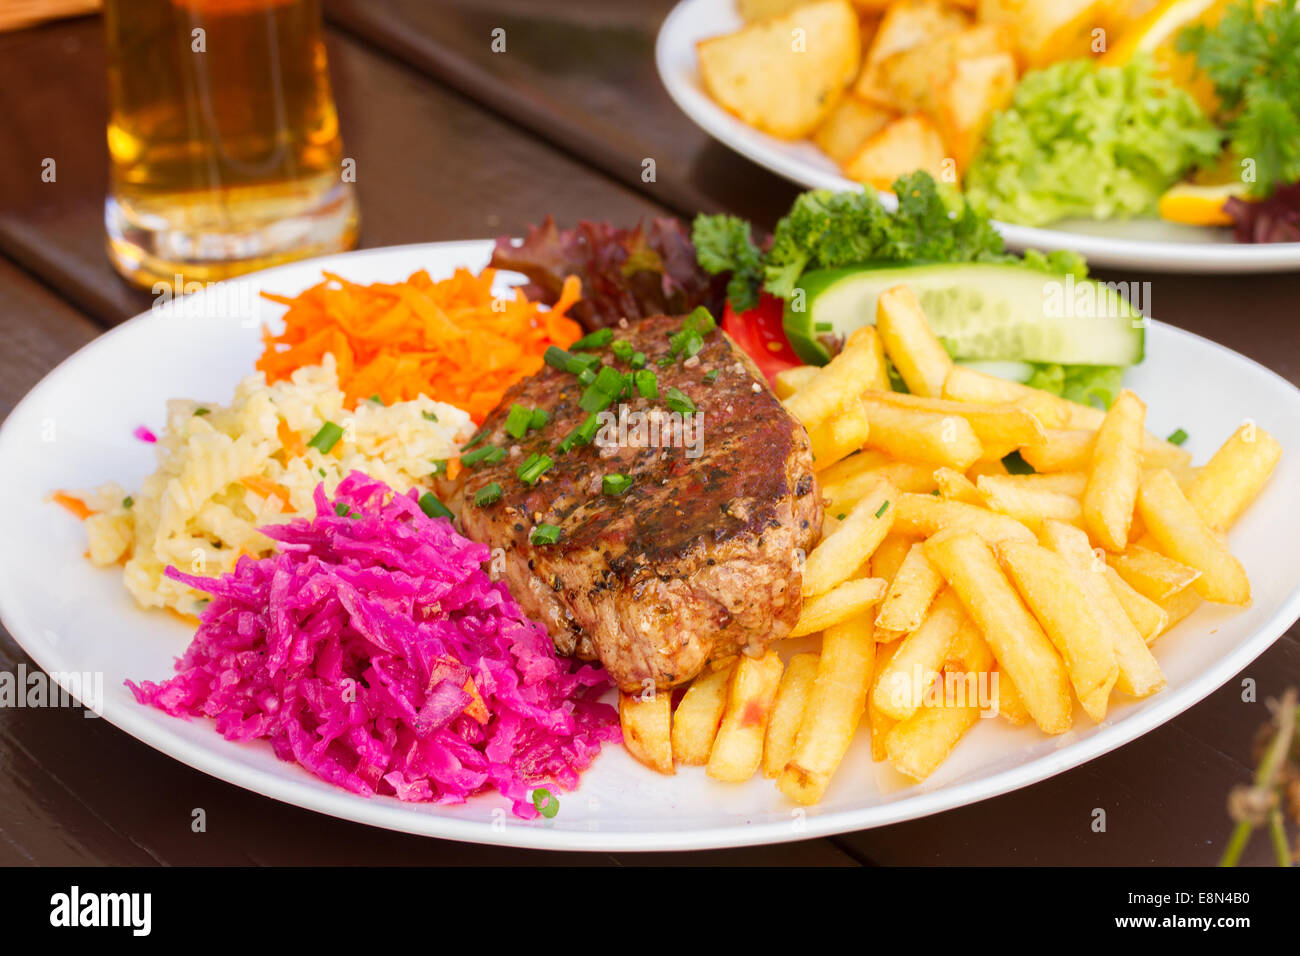 plate of meat steak with garnish - Stock Image